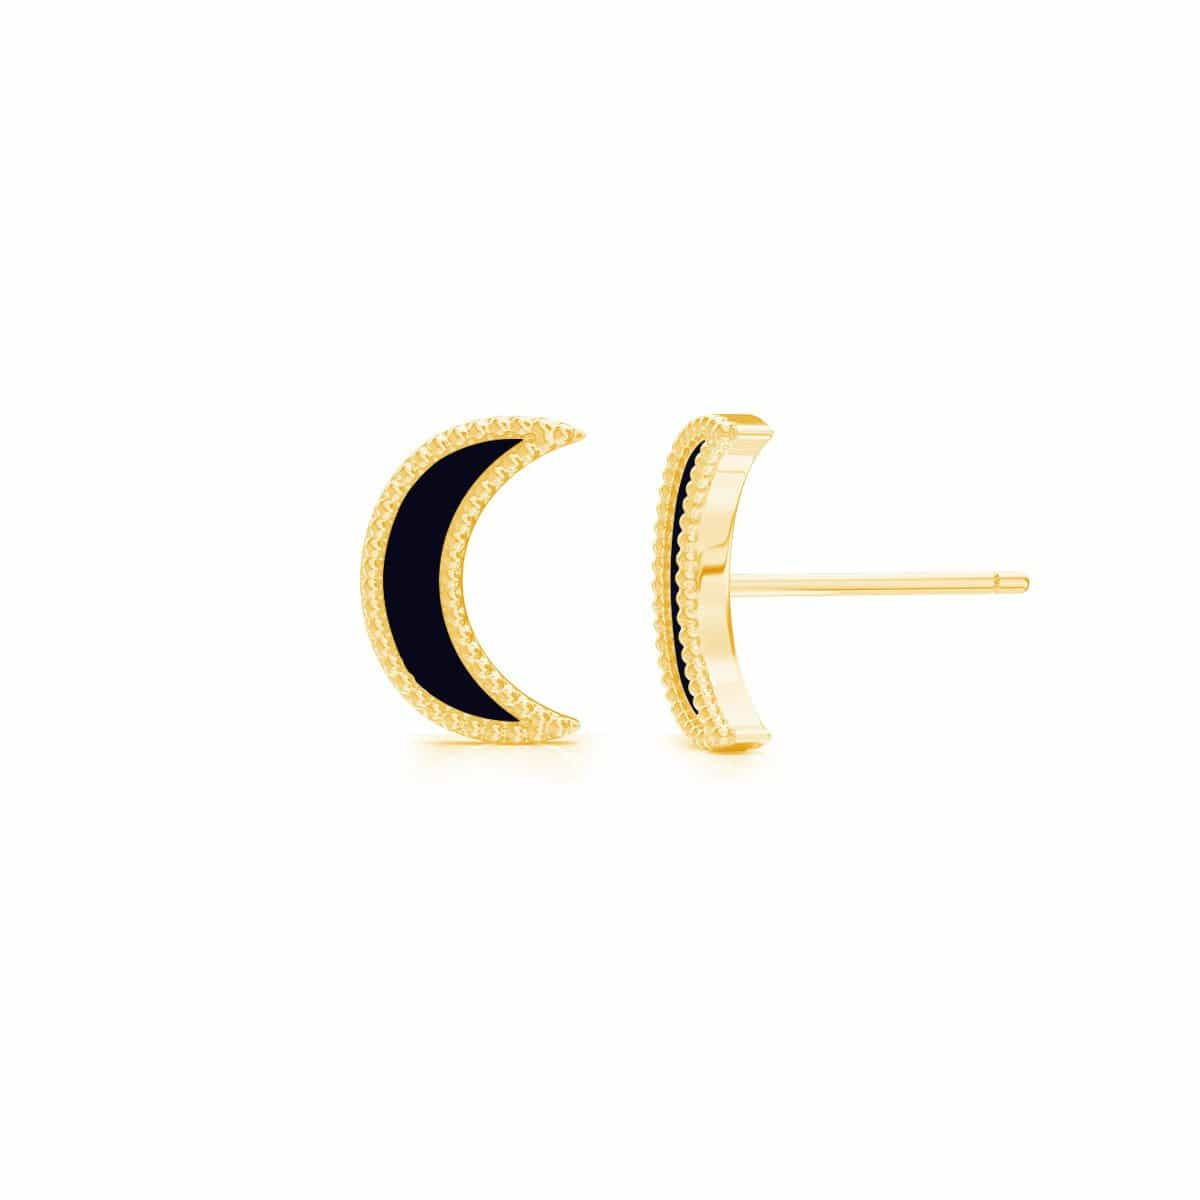 Moyen Enamel Moon Earrings